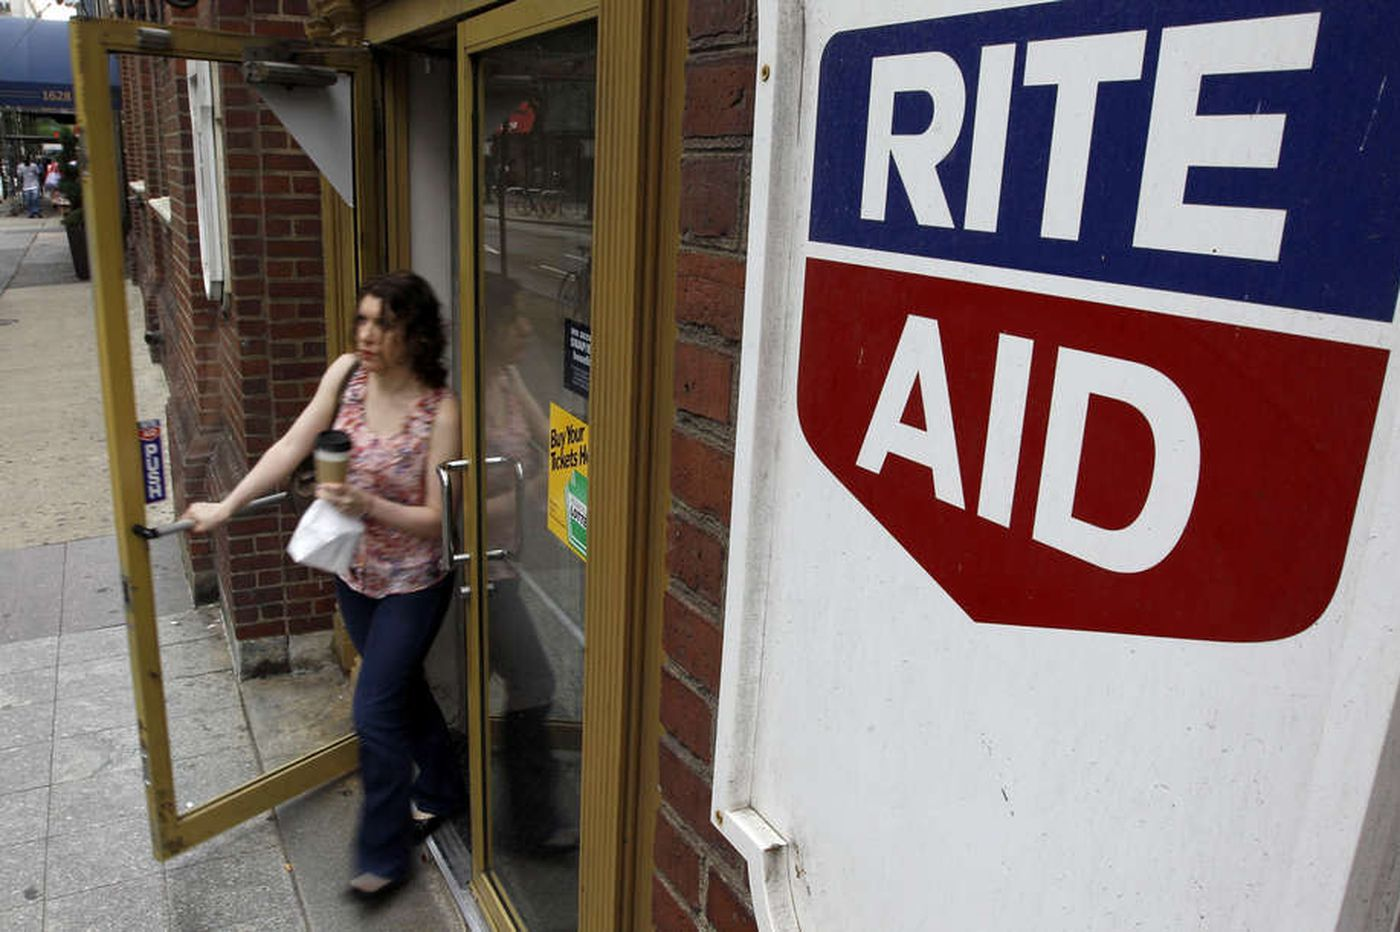 Pa.-based Rite Aid's top executives leave as 400 jobs are cut in wide shakeup